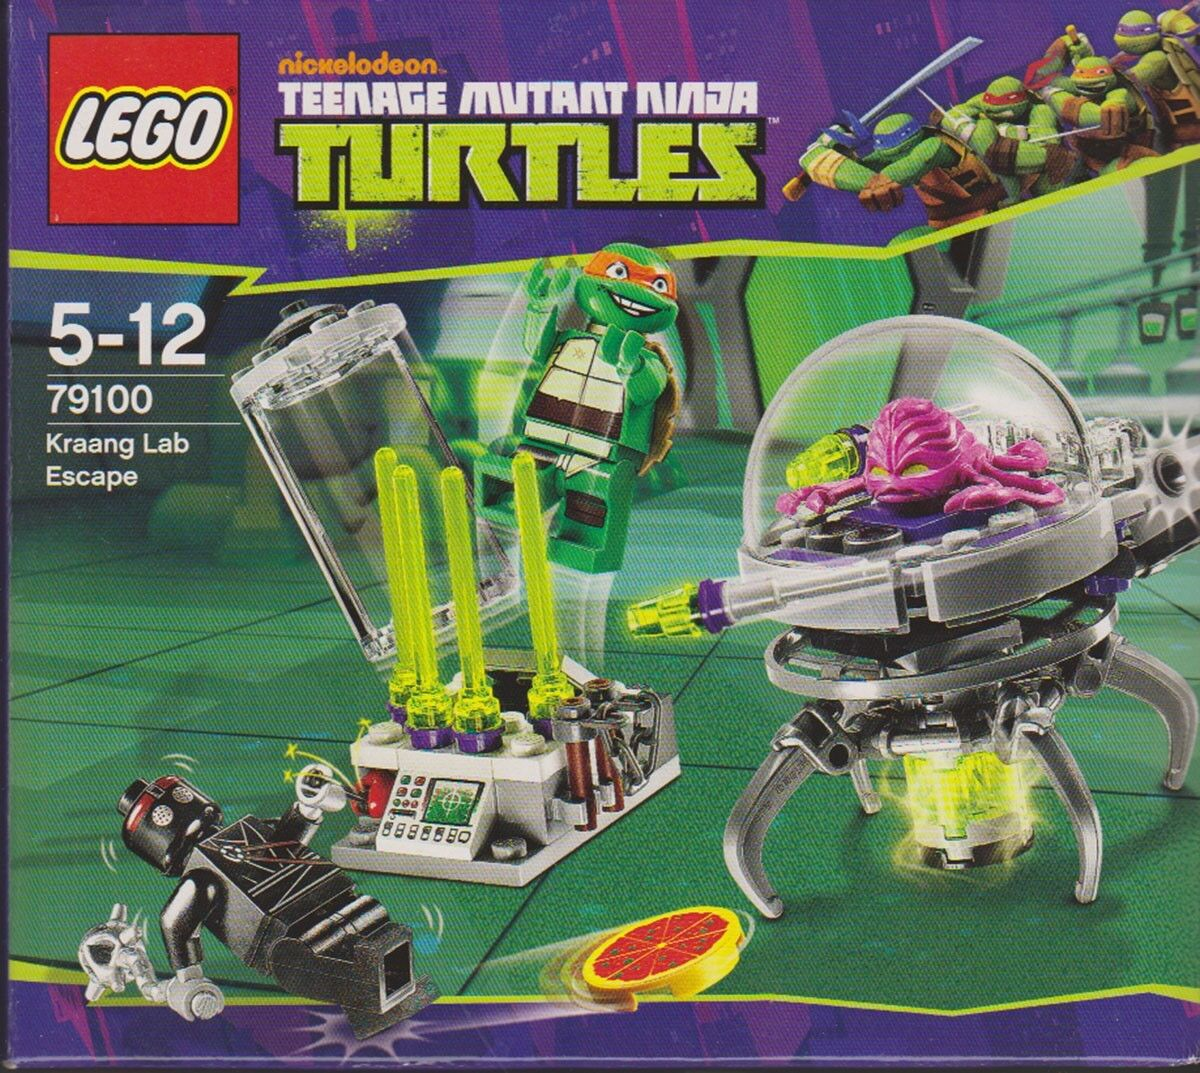 LEGO NINJA TURTLES KRAANG LAB ESCAPE 79100 **BRAND NEW DATED 2013 ** RETIrosso